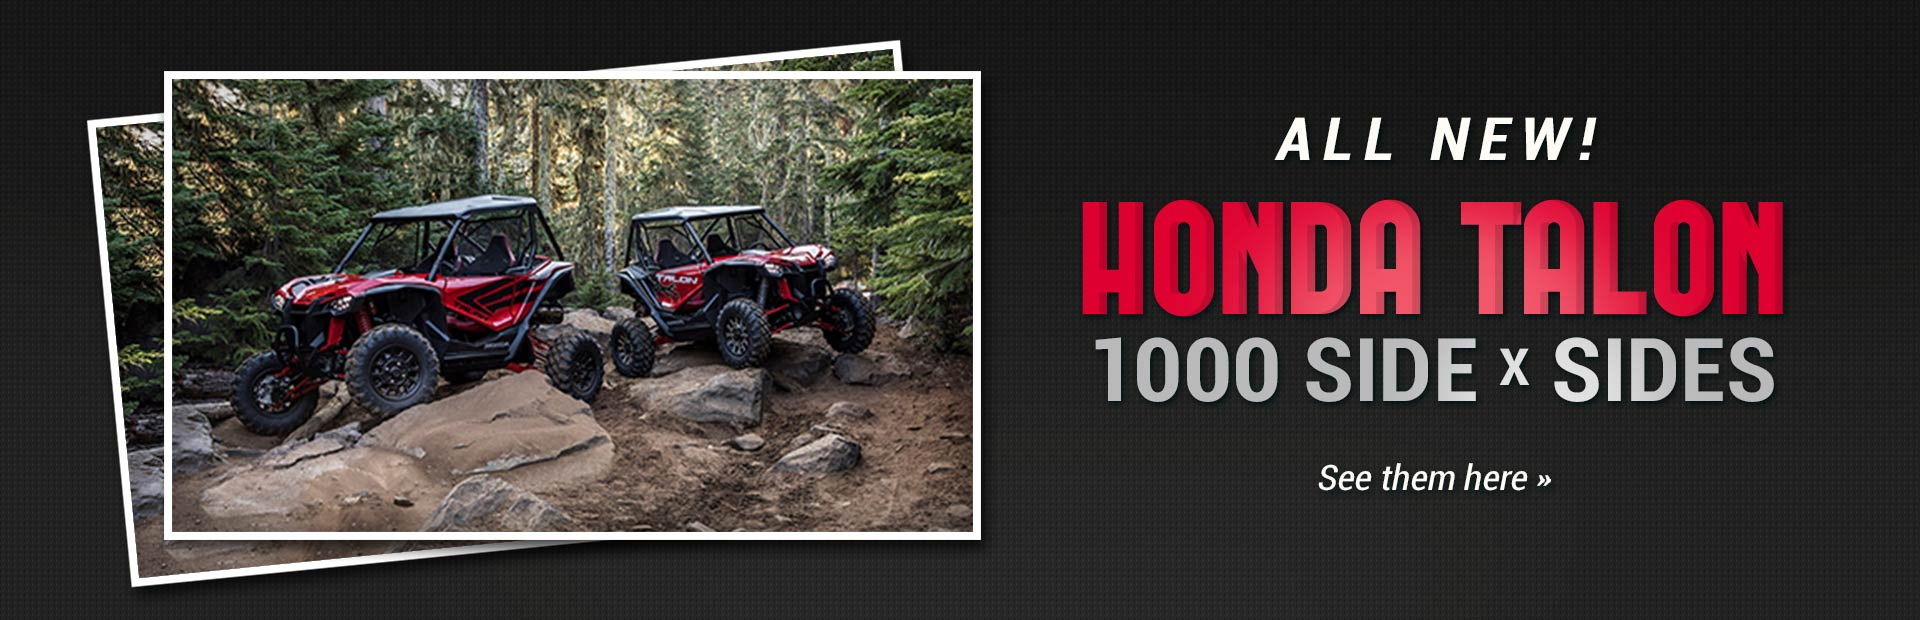 Honda Talon 1000 Side x Sides: Click here to view the models.